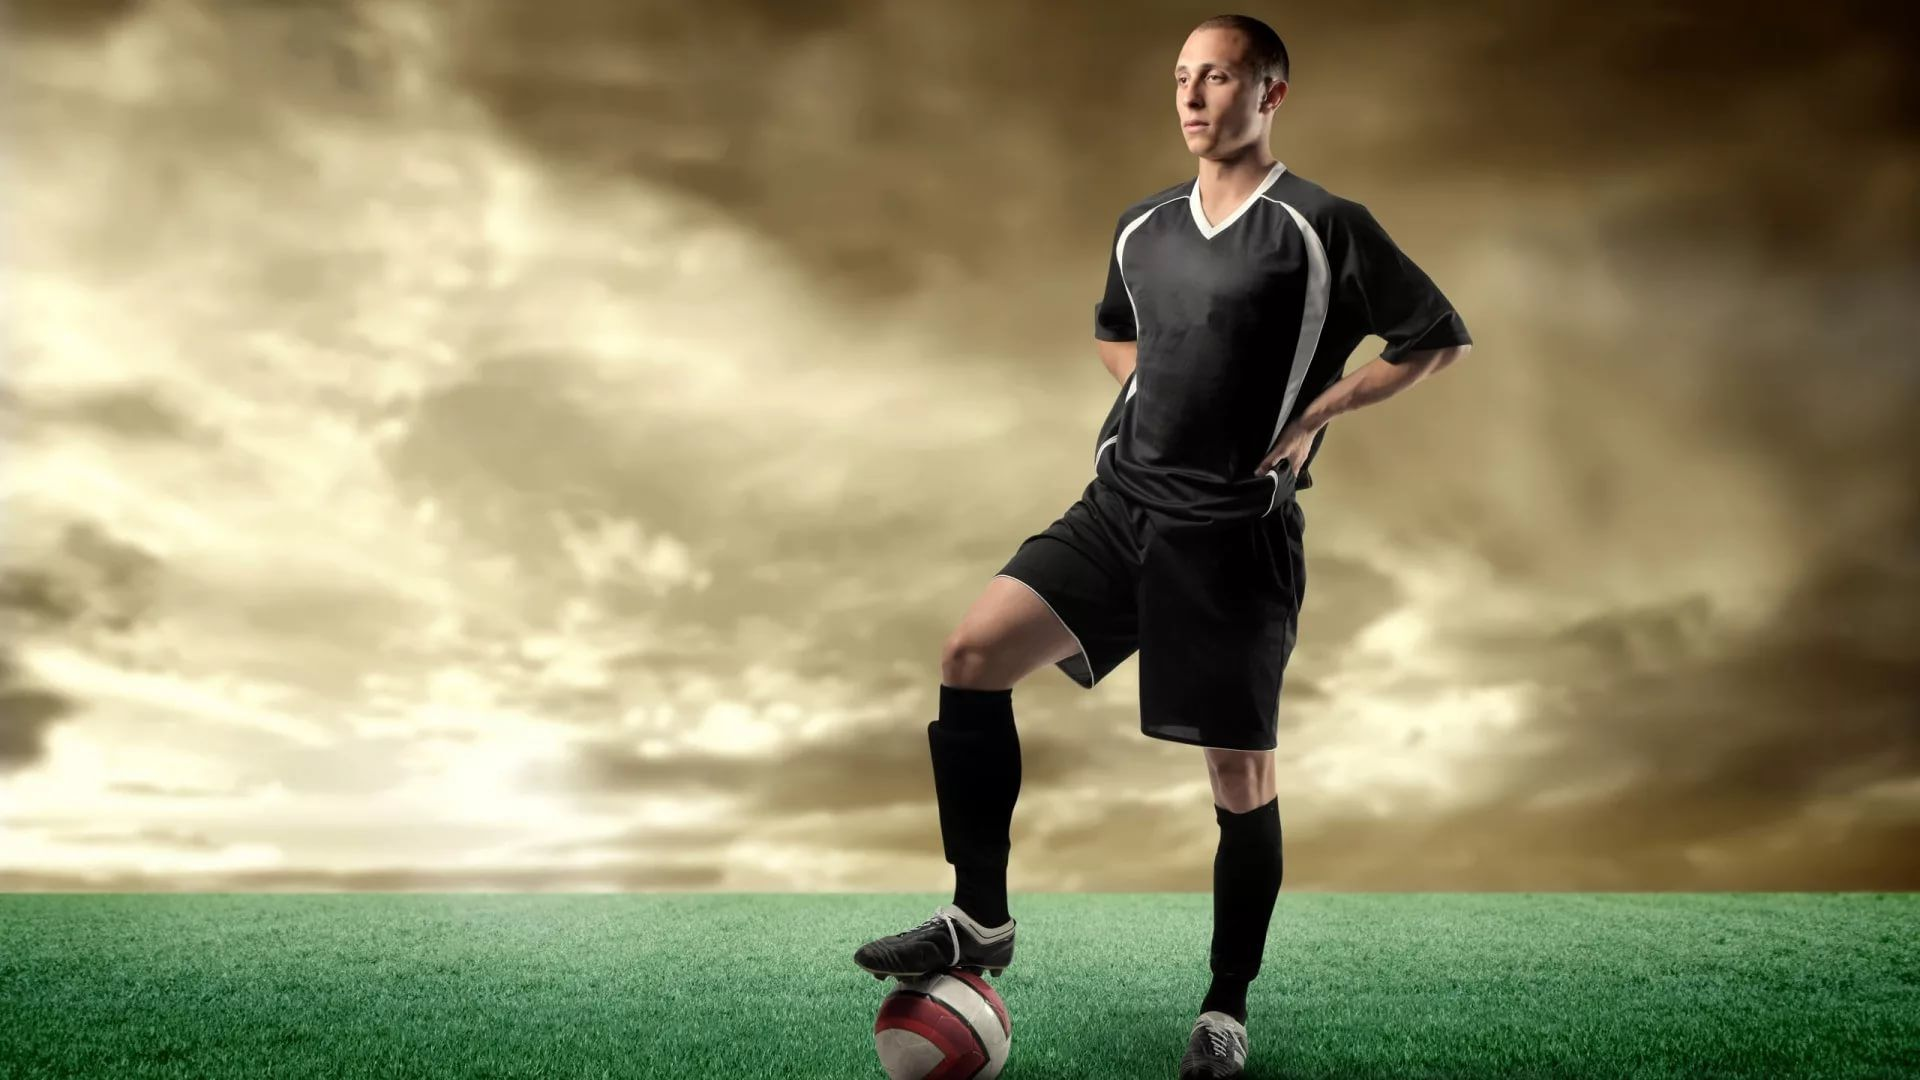 Soccer Player High Definition